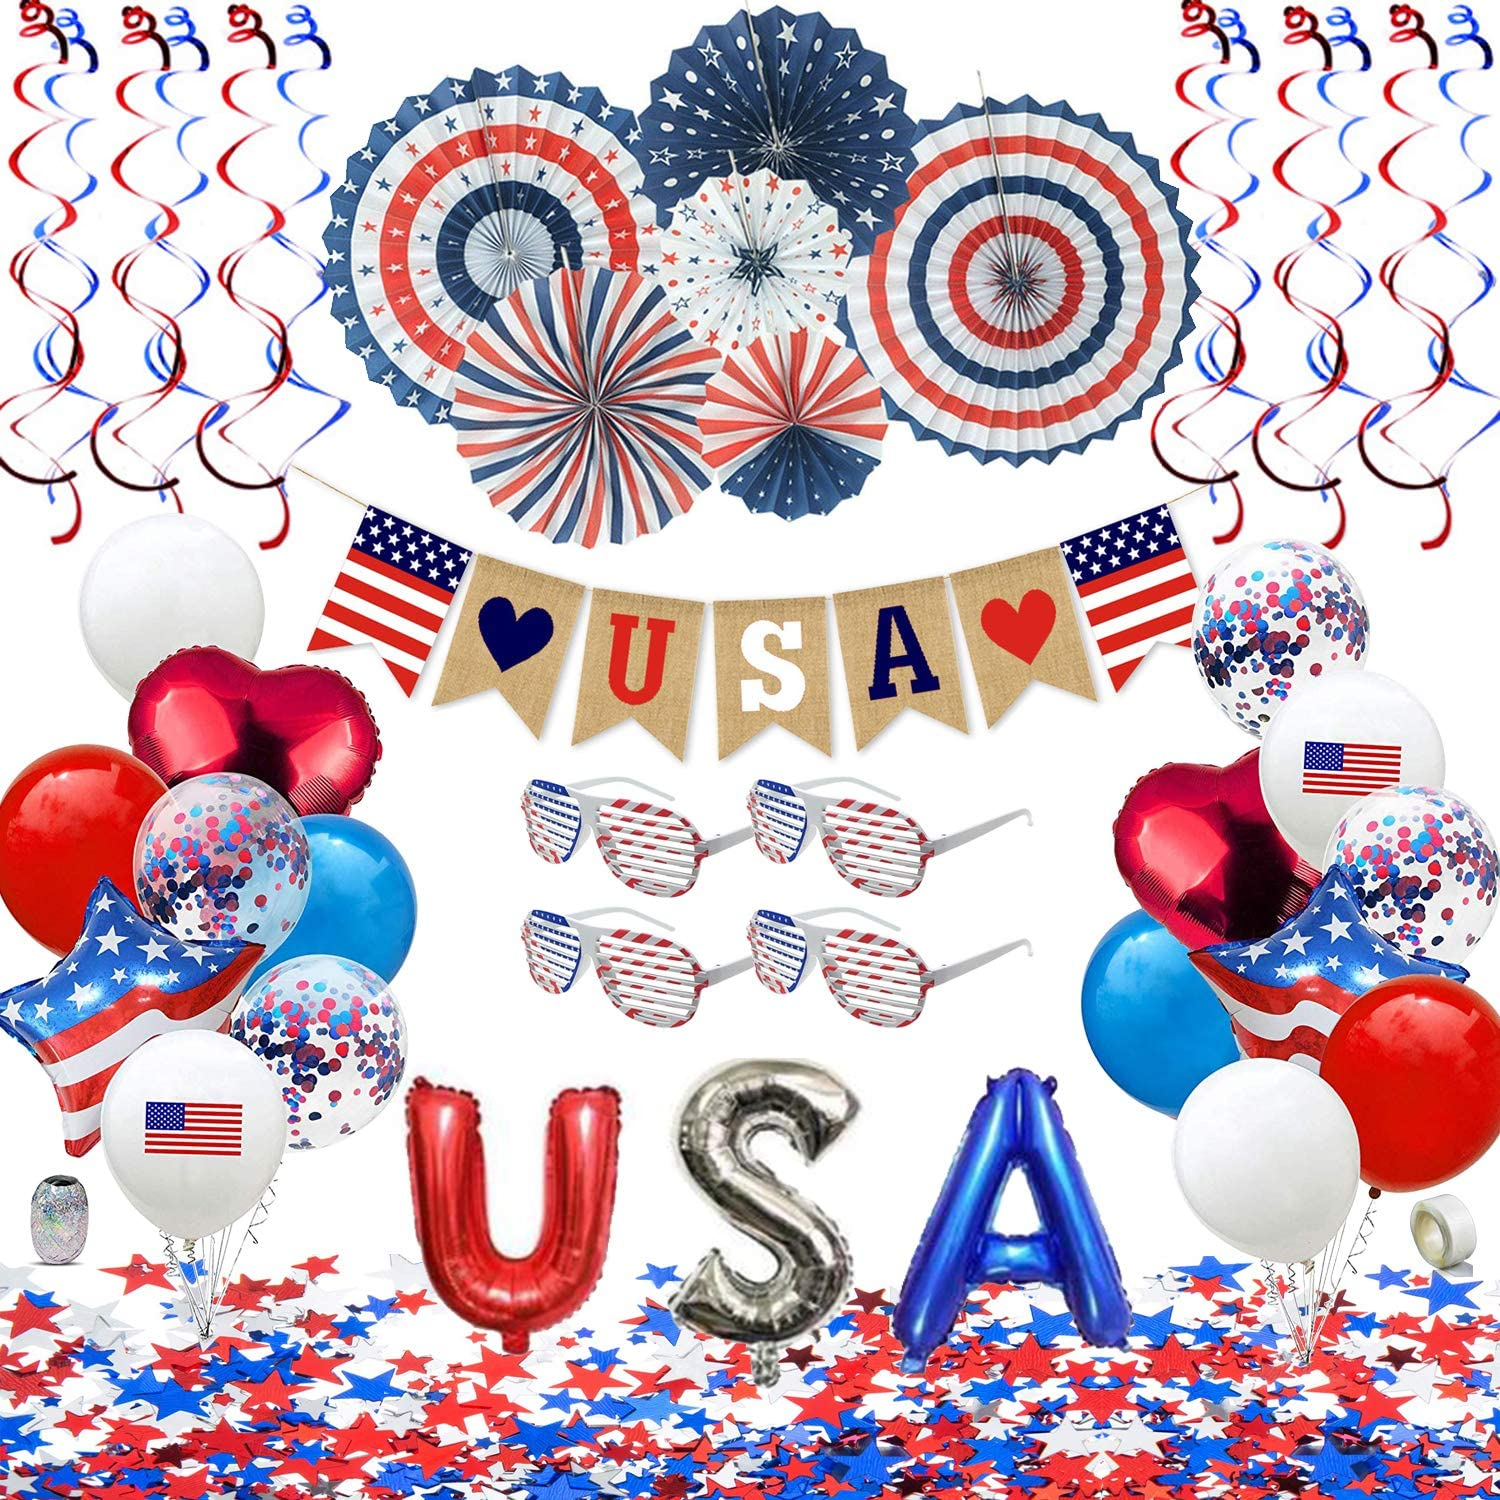 Patriotic Decorations - American Flag Party Supplies, 45 pcs Patriotic Party Supplies Including Paper Fans, Banner, Shades Glasses, Balloons, Star Confetti, Hanging Swirl